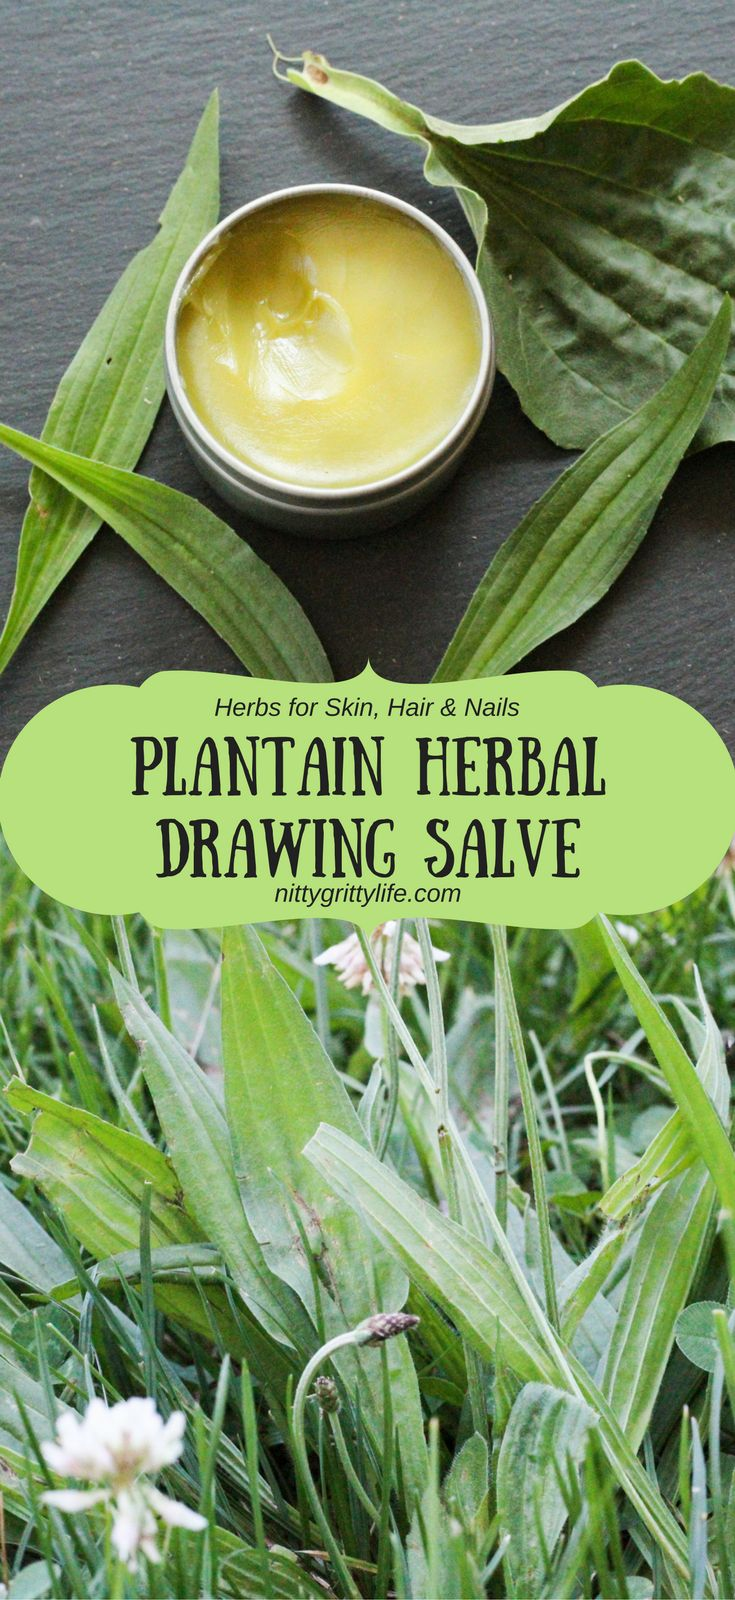 Plantain is an herb with many uses. Make this plantain infused drawing salve to relieve all your bug bites, bee stings, slivers, and rashes.